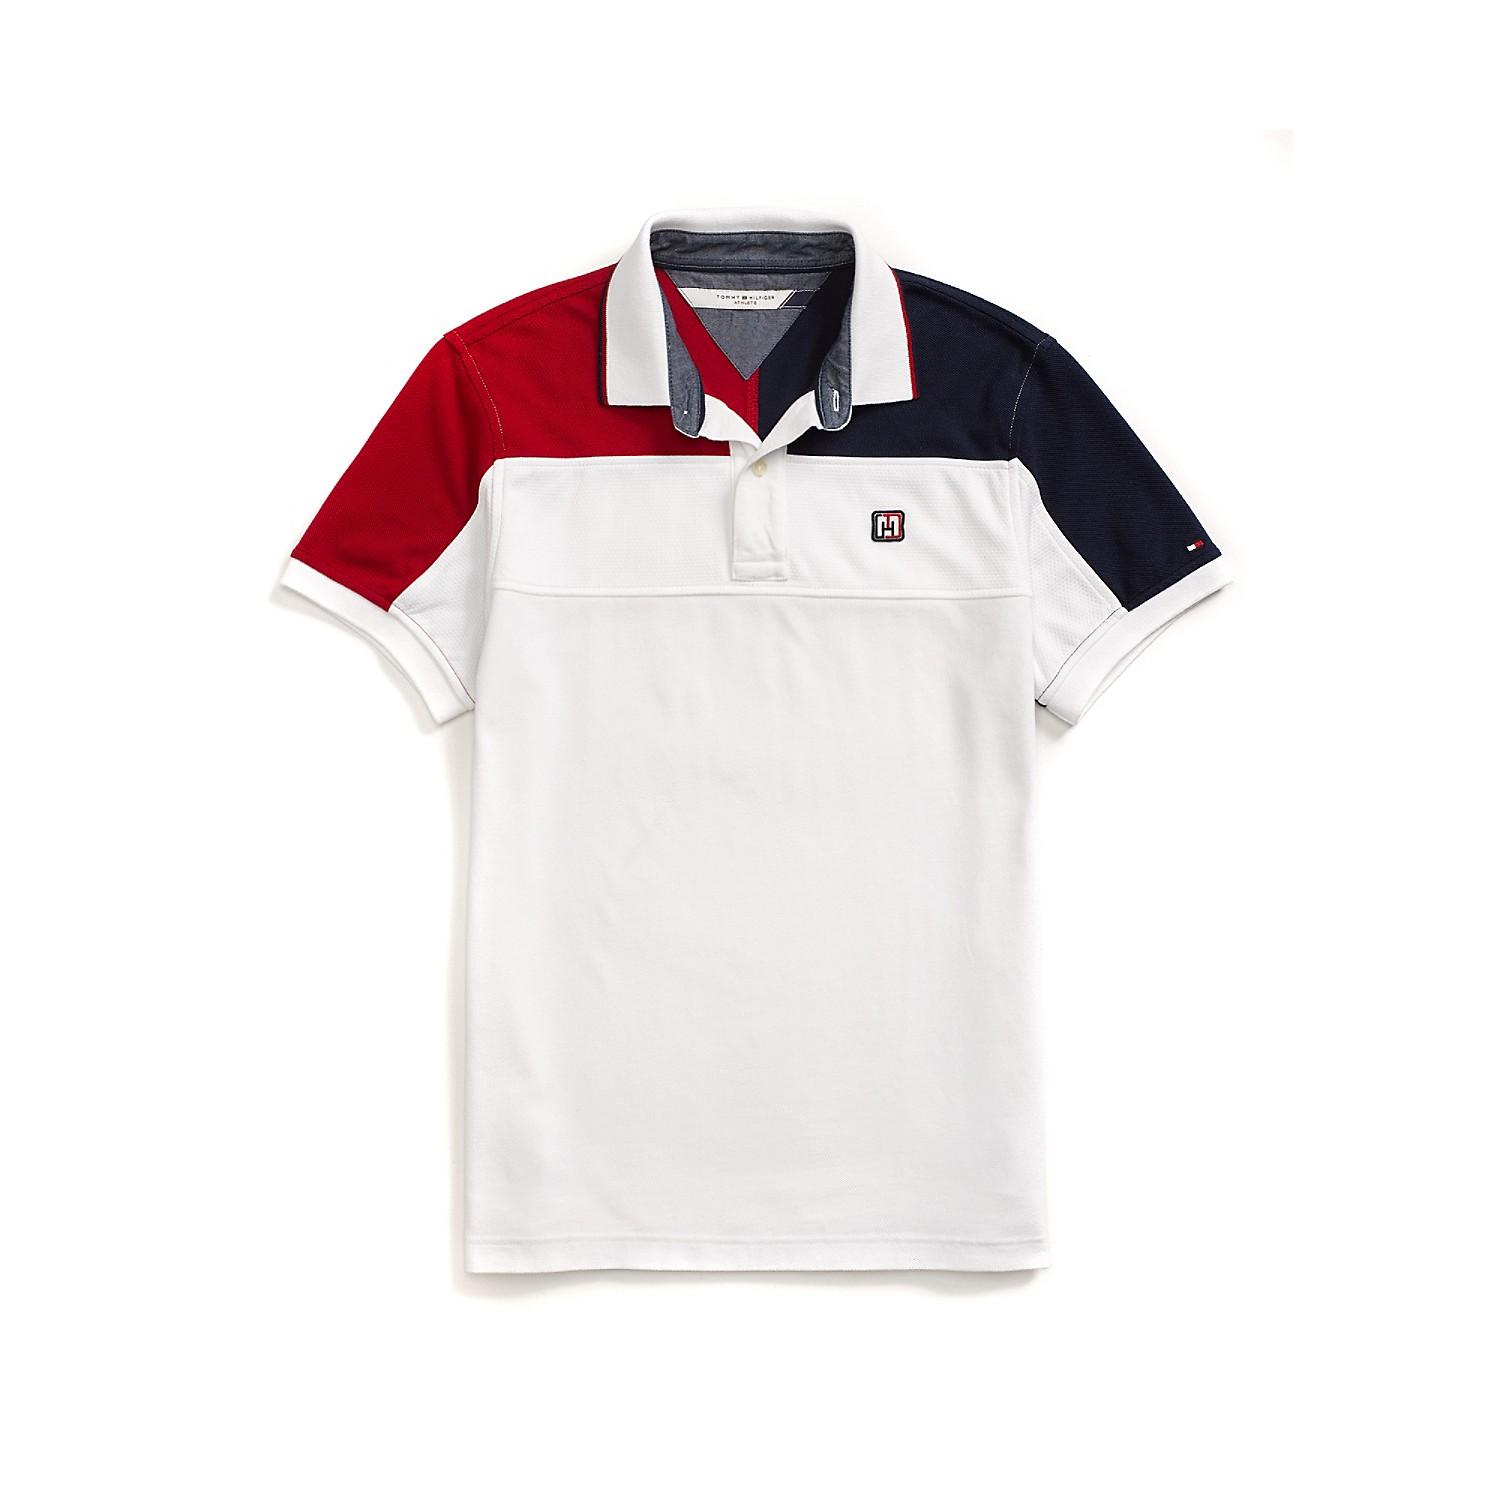 4a2720bb65f77 Tipo Polo Tommy Hilfiger Blanco - Madeira ropa importada